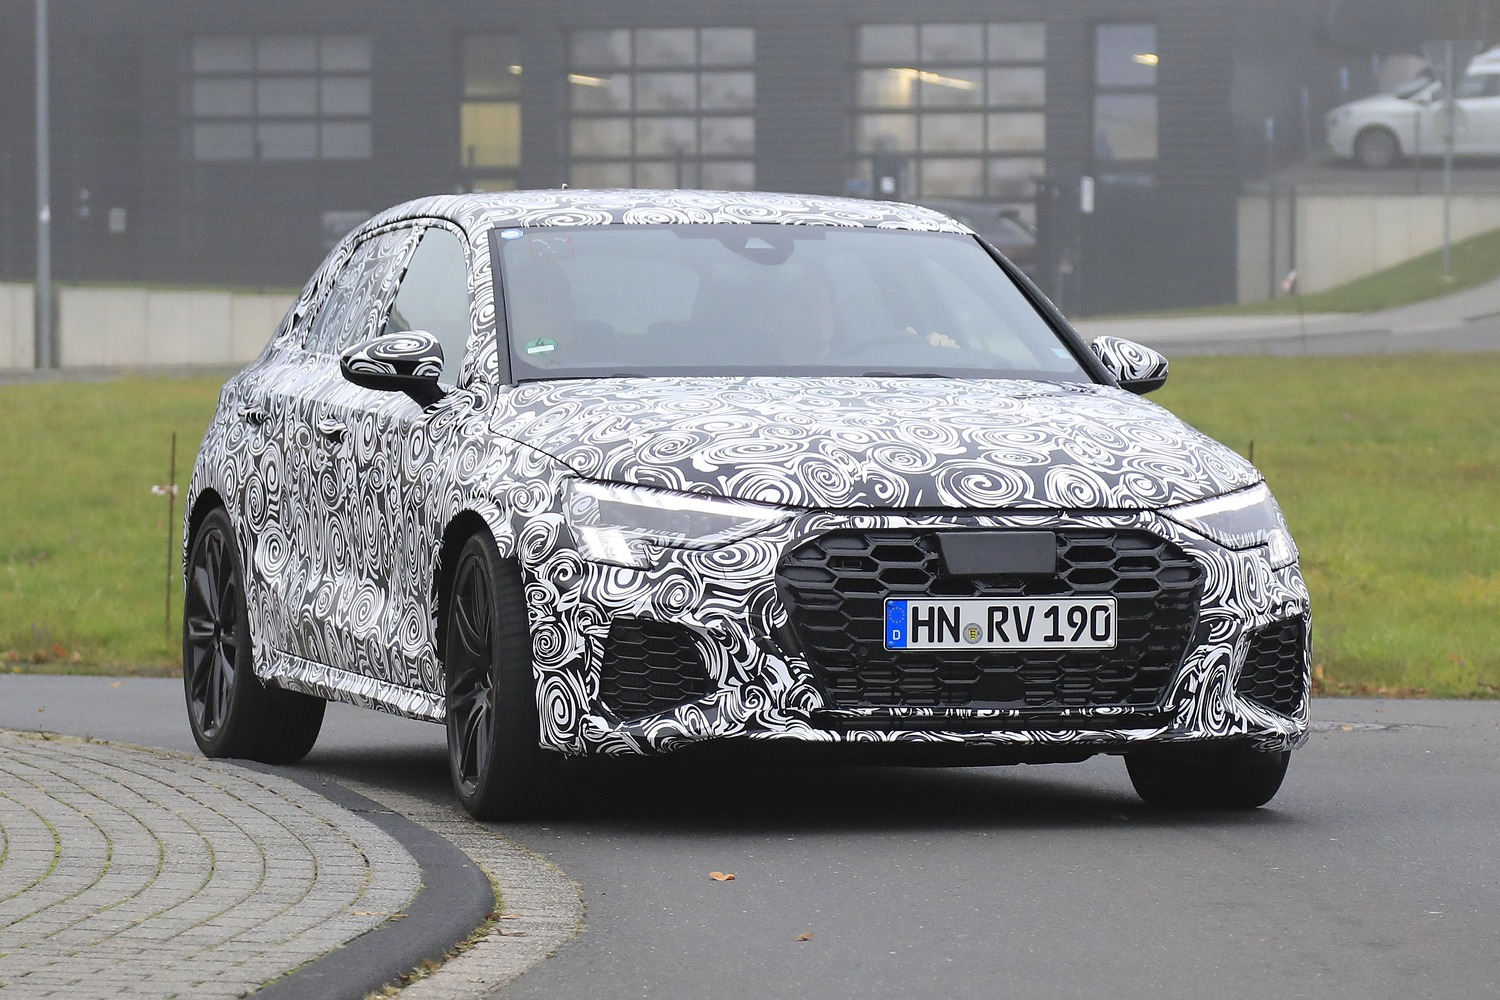 Audi RS3 2020, le foto spia - News - Automoto.it